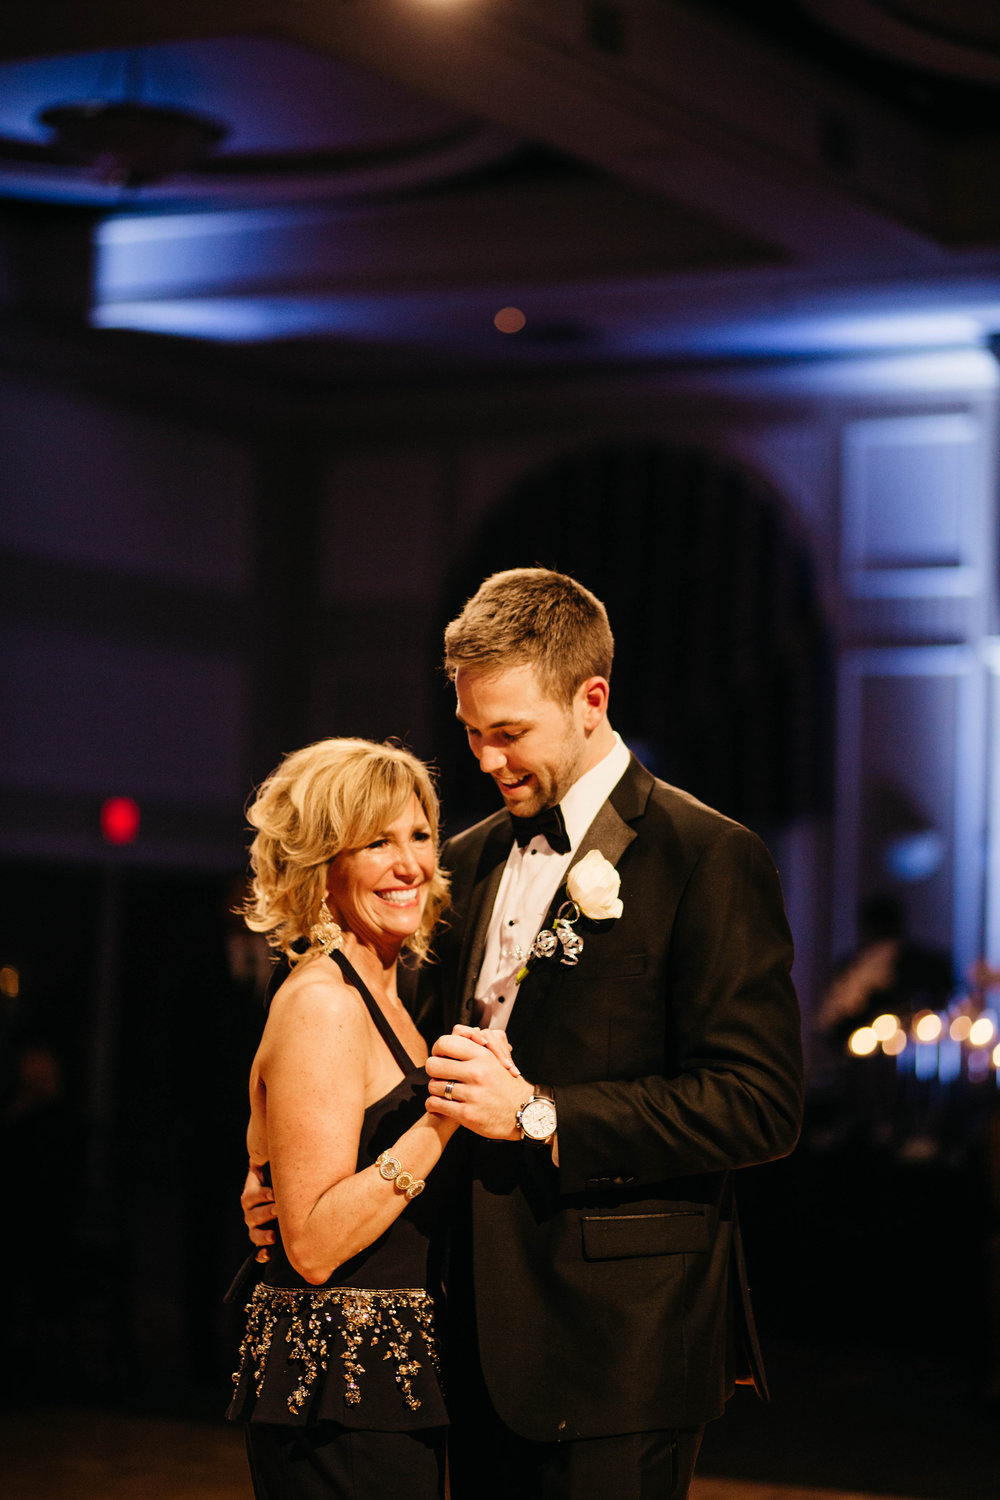 37 New Years Eve Wedding Mother Son Dance.jpg